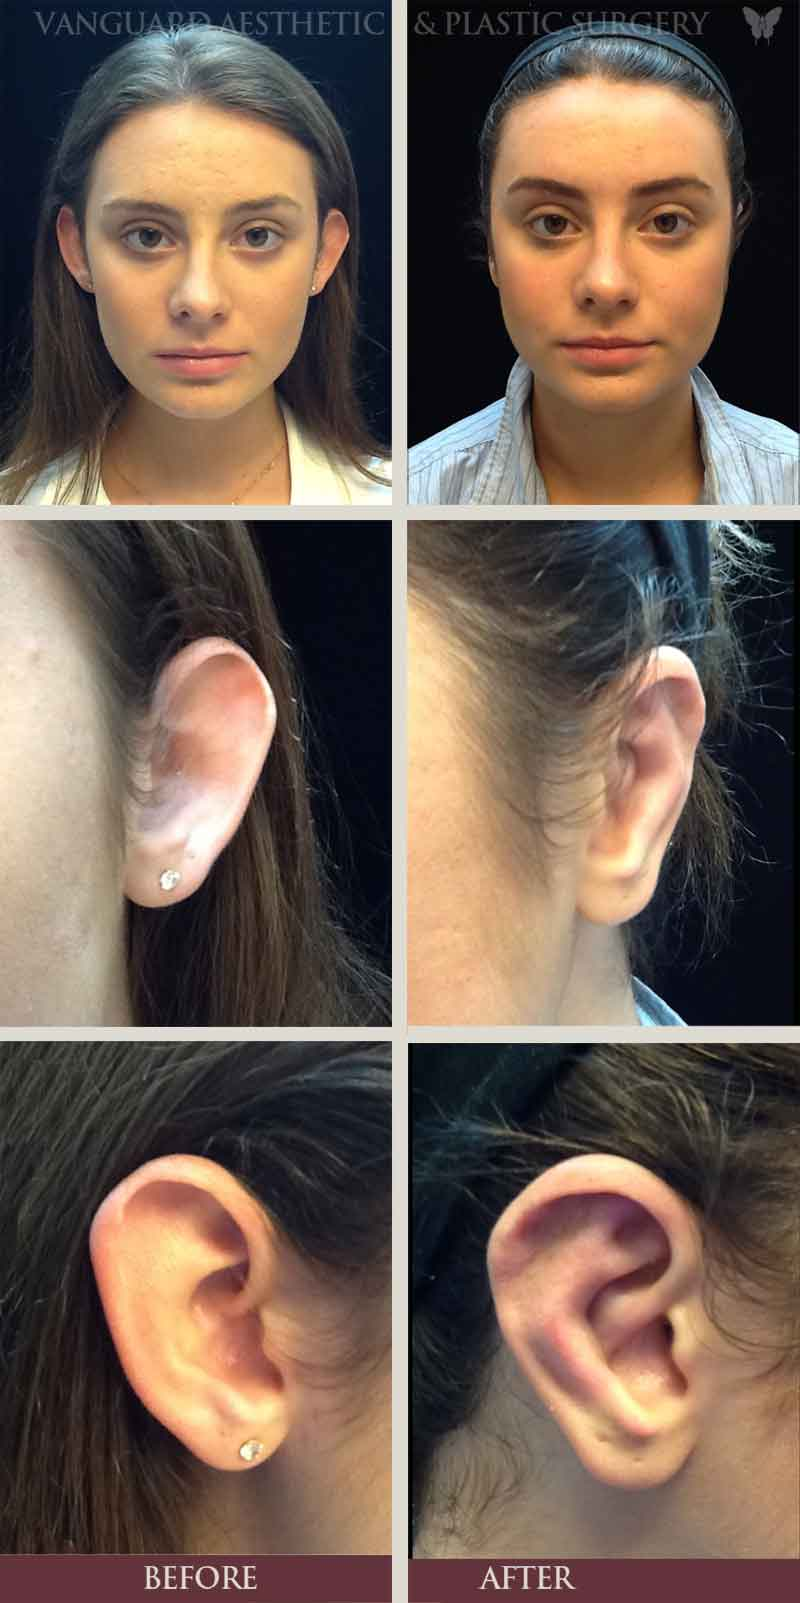 florida plastic surgery ear surgery otoplasty before and after